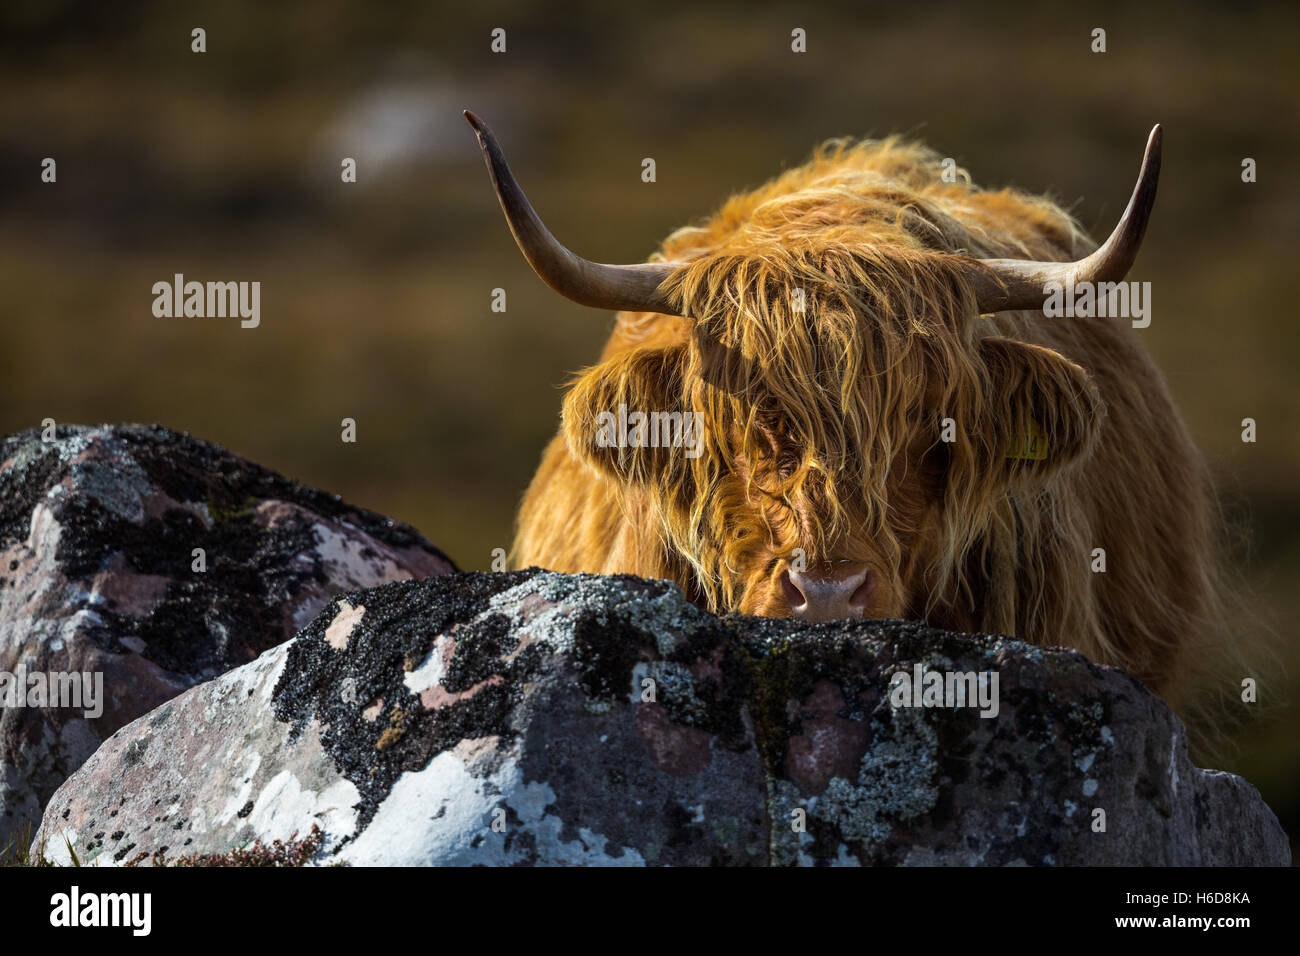 Highland Cow looking out from behind a rock. - Stock Image